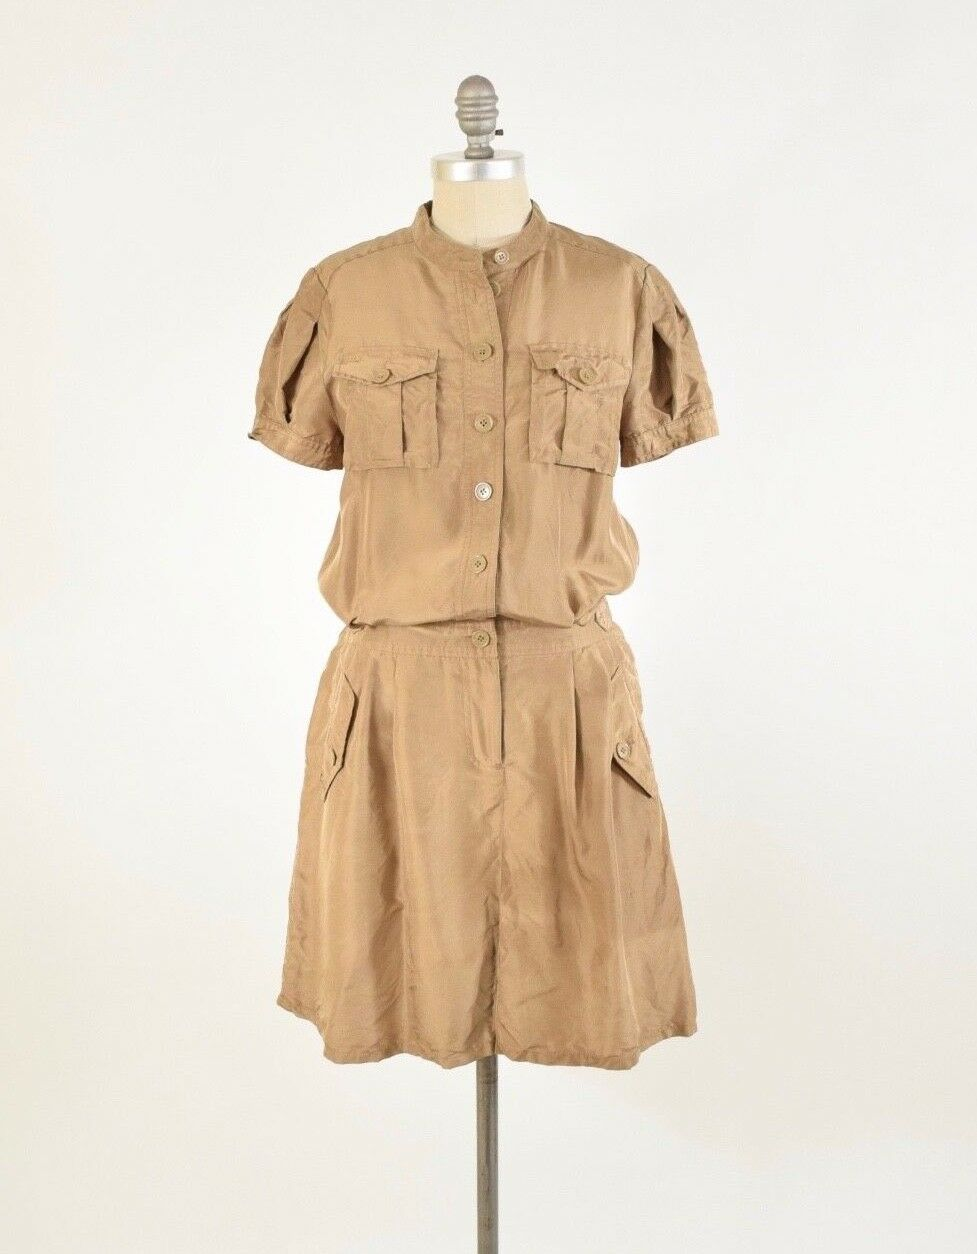 Marc Jacobs Romper WOMENS S Short Sleeve Safari-Style Tan Button-Up